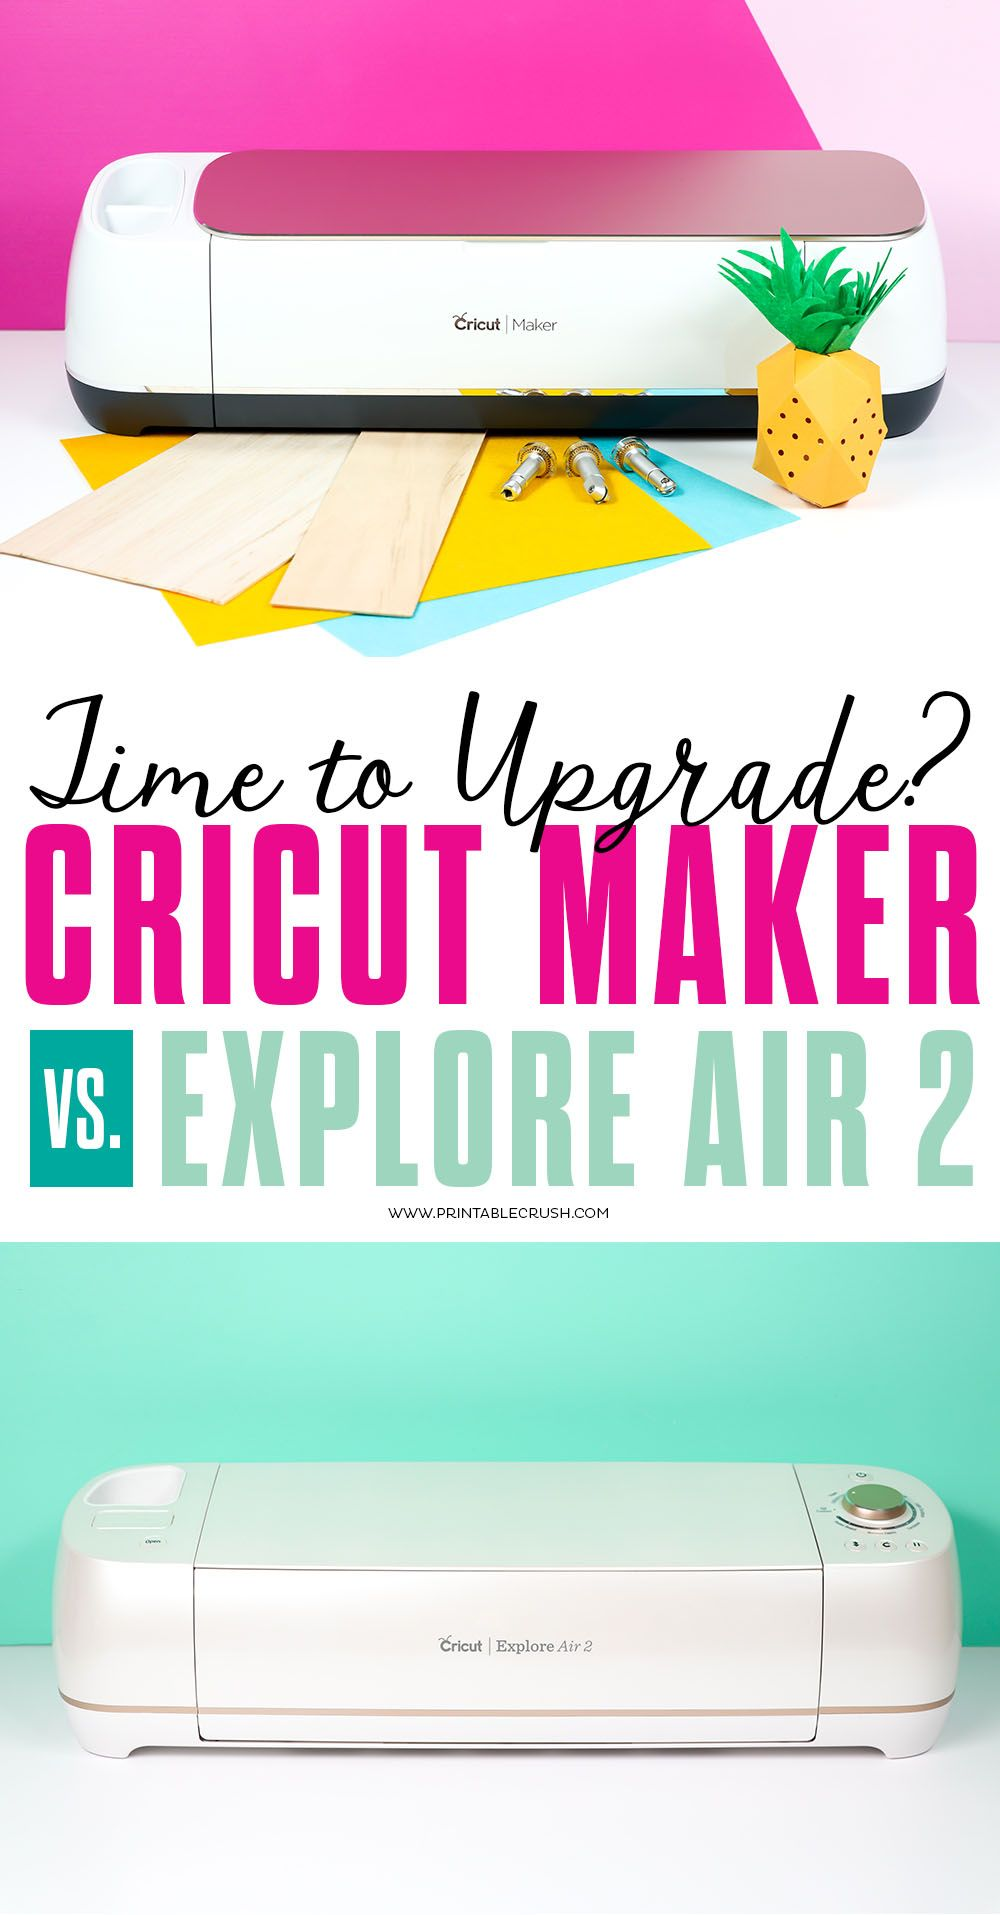 Cricut Maker Vs Explore Air 2 Cricut explore air, Cricut